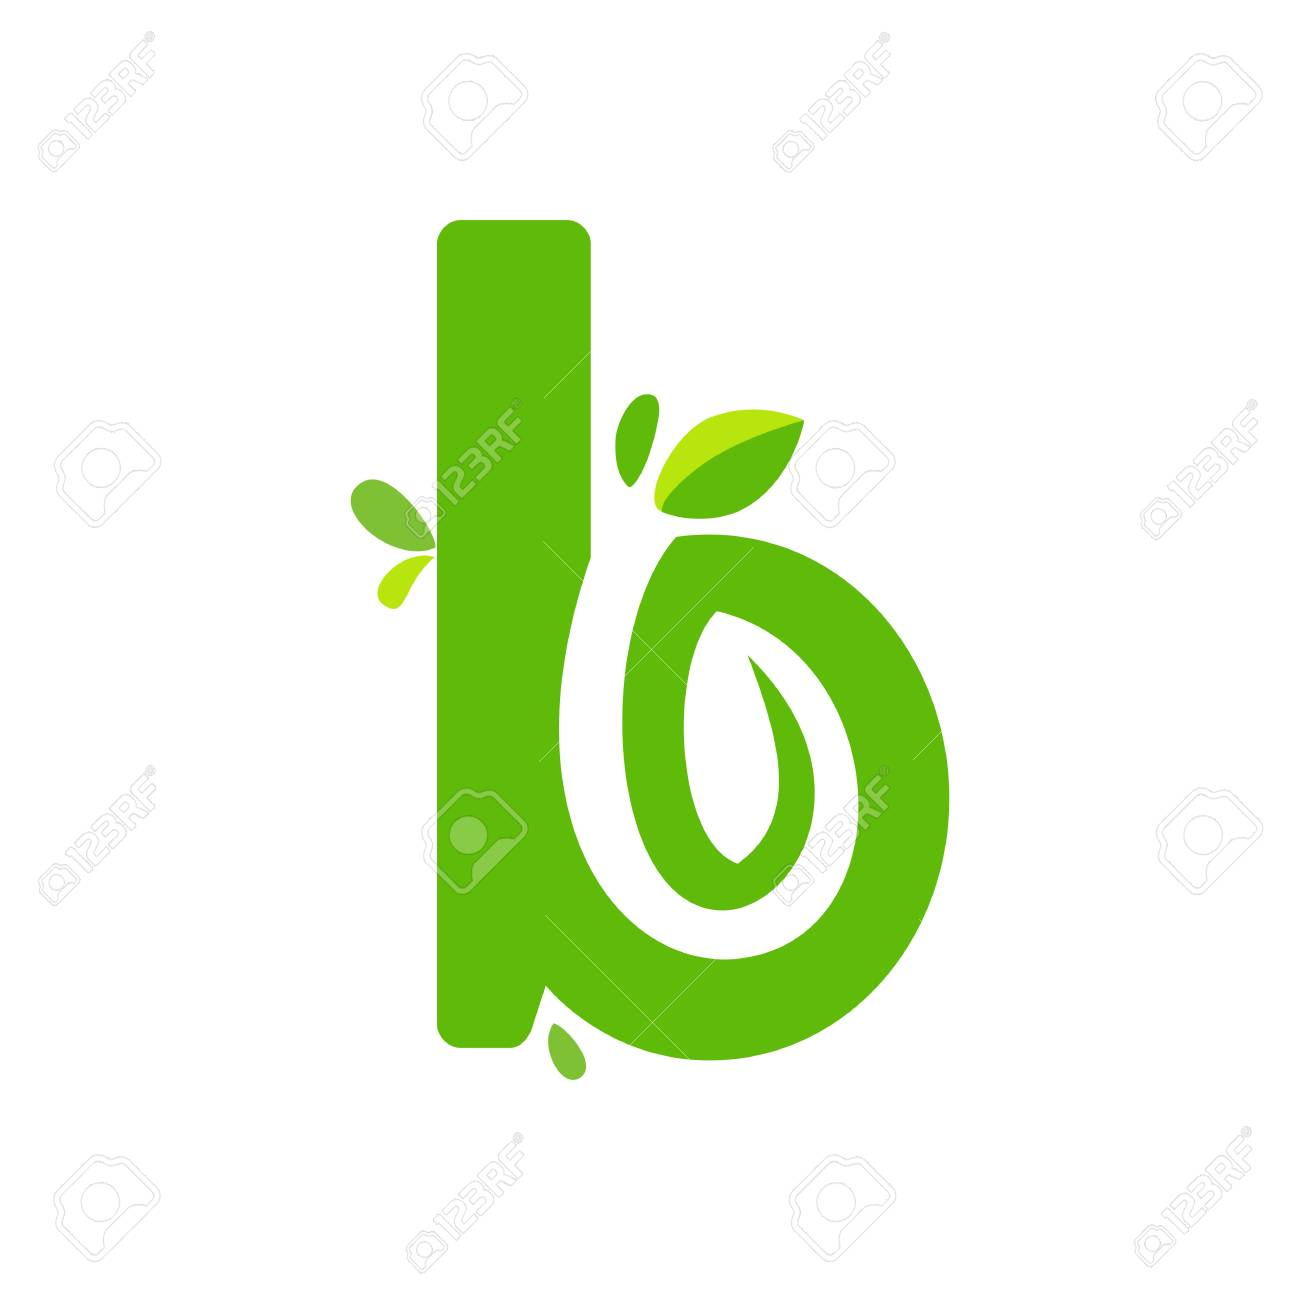 Initials B Icon Logo Design Nature Green Leaf Symbol Royalty Free